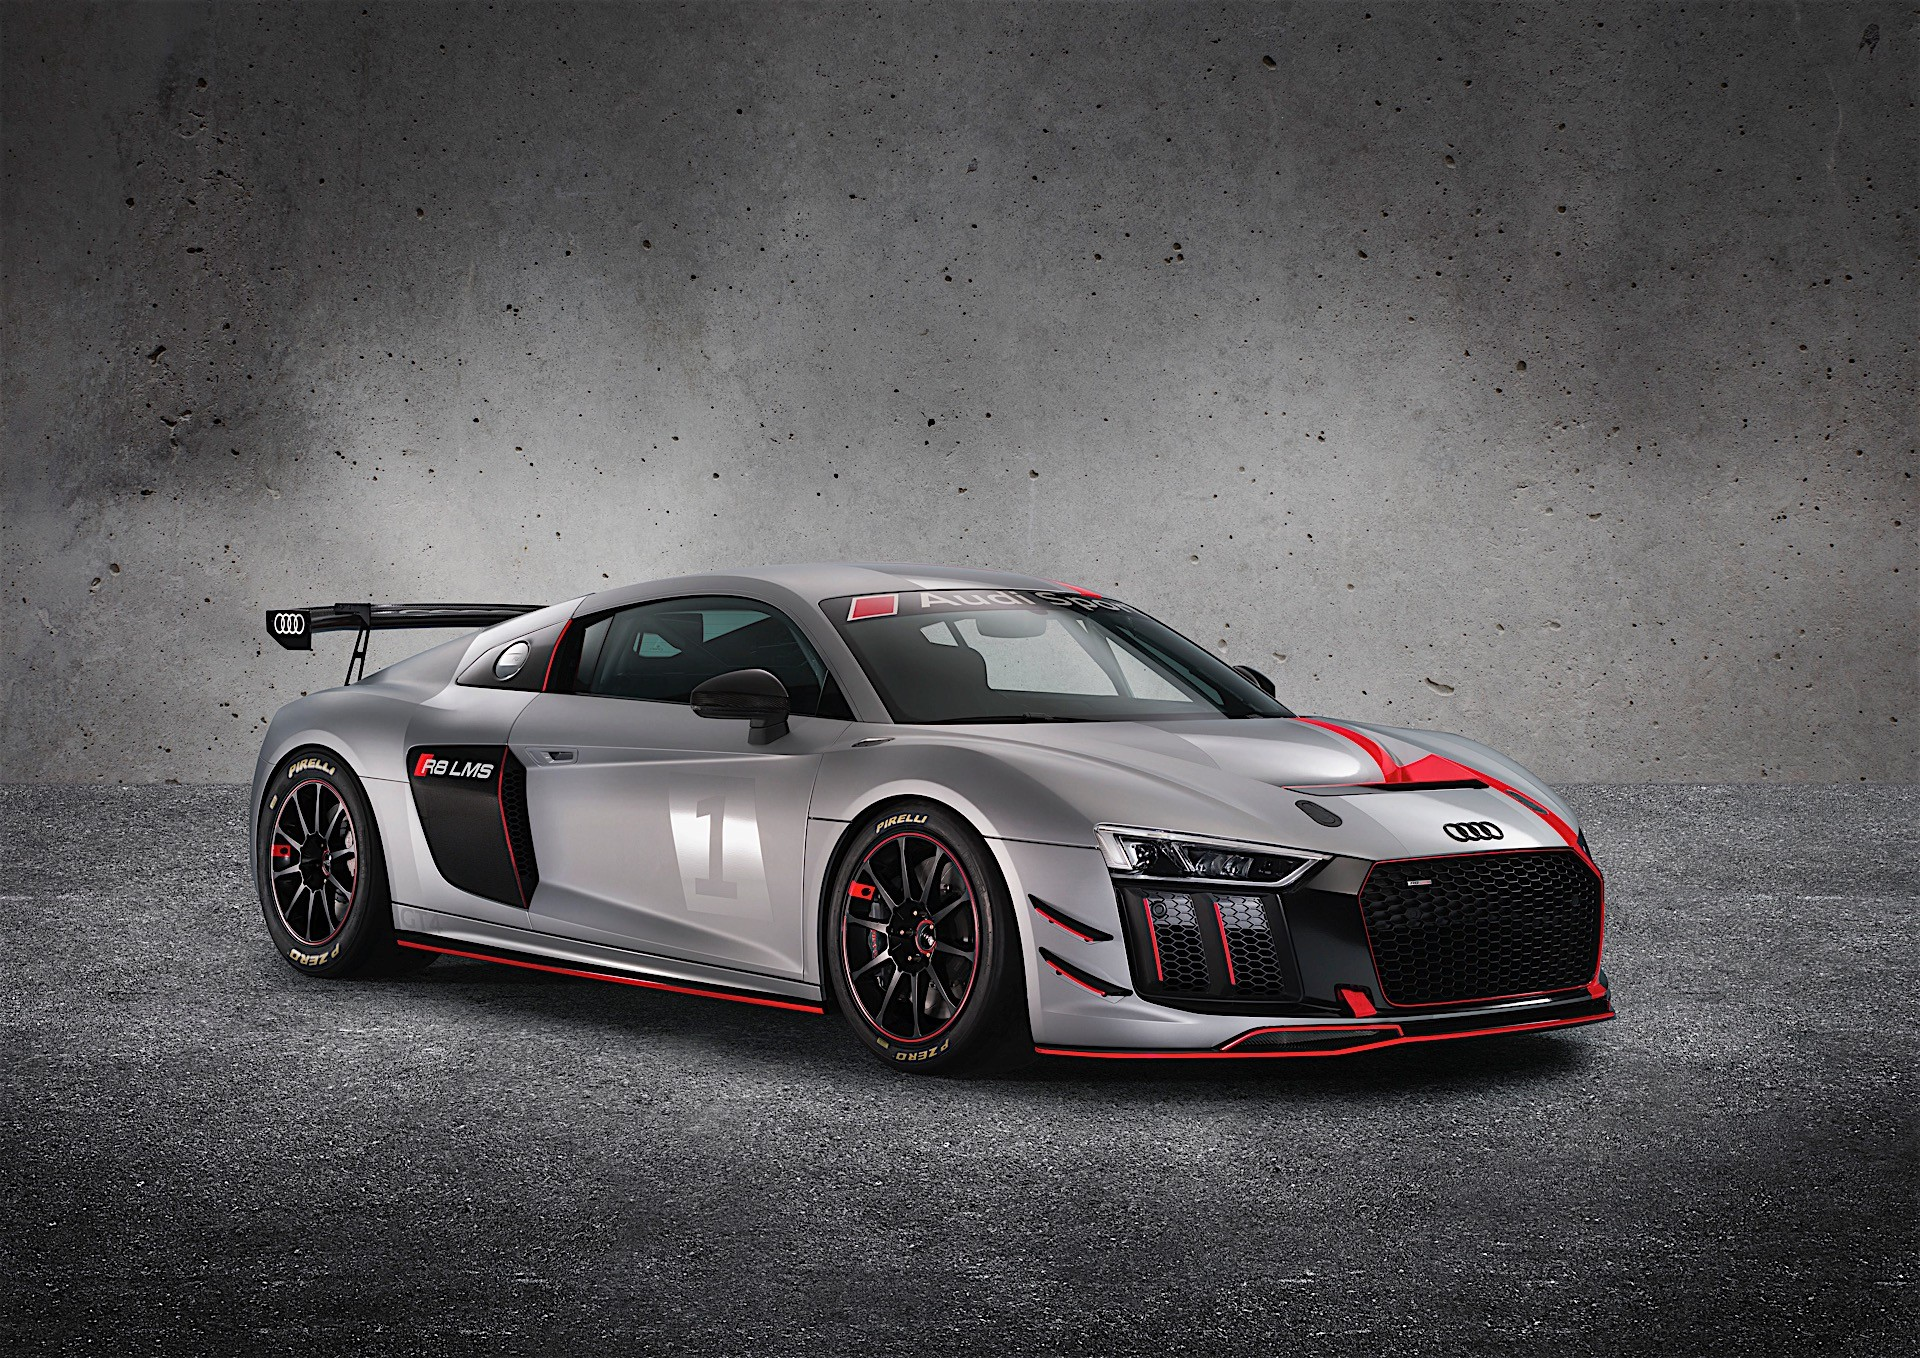 2017 Audi R8 GT4 Unveiled, It's the Race Version That's Closest to the Road Car - autoevolution